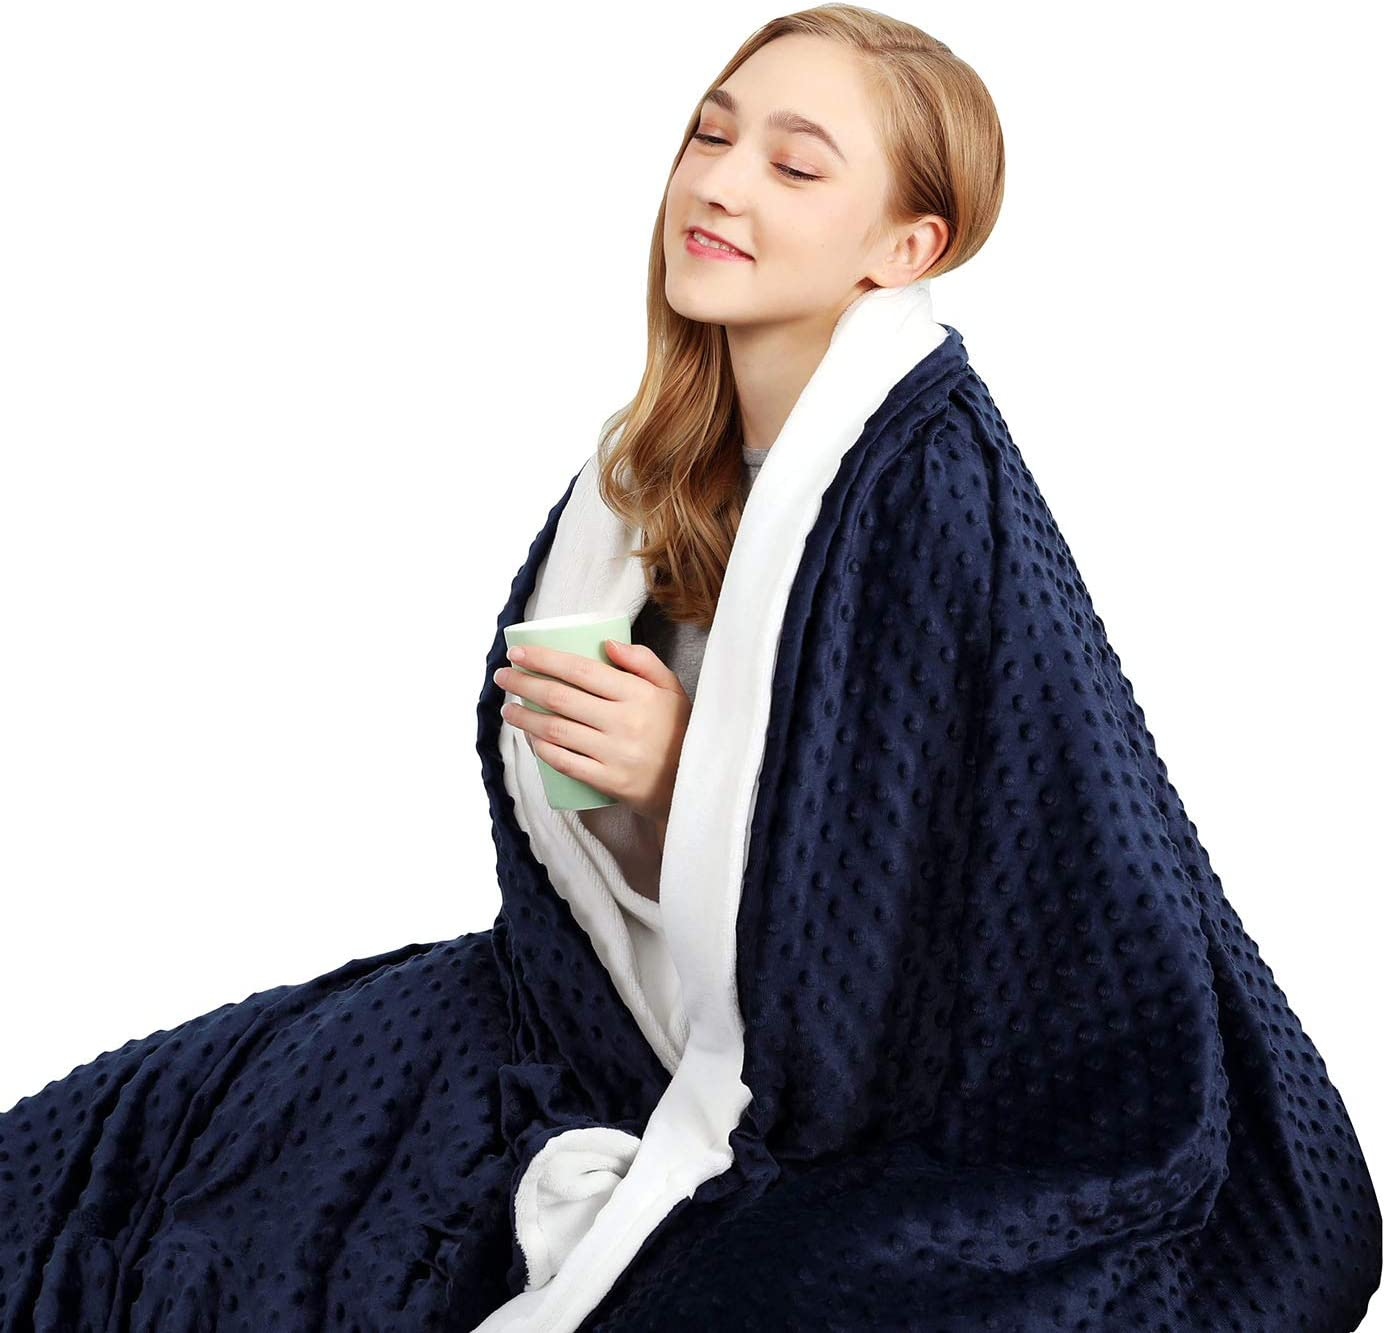 """CHIAVE Weighted Blanket 15 Lbs 48""""x 72"""" Full Size I for Adults and Teens from 125-175 lbs   Plush Minky Removable and Washable Cover - Navy and White"""